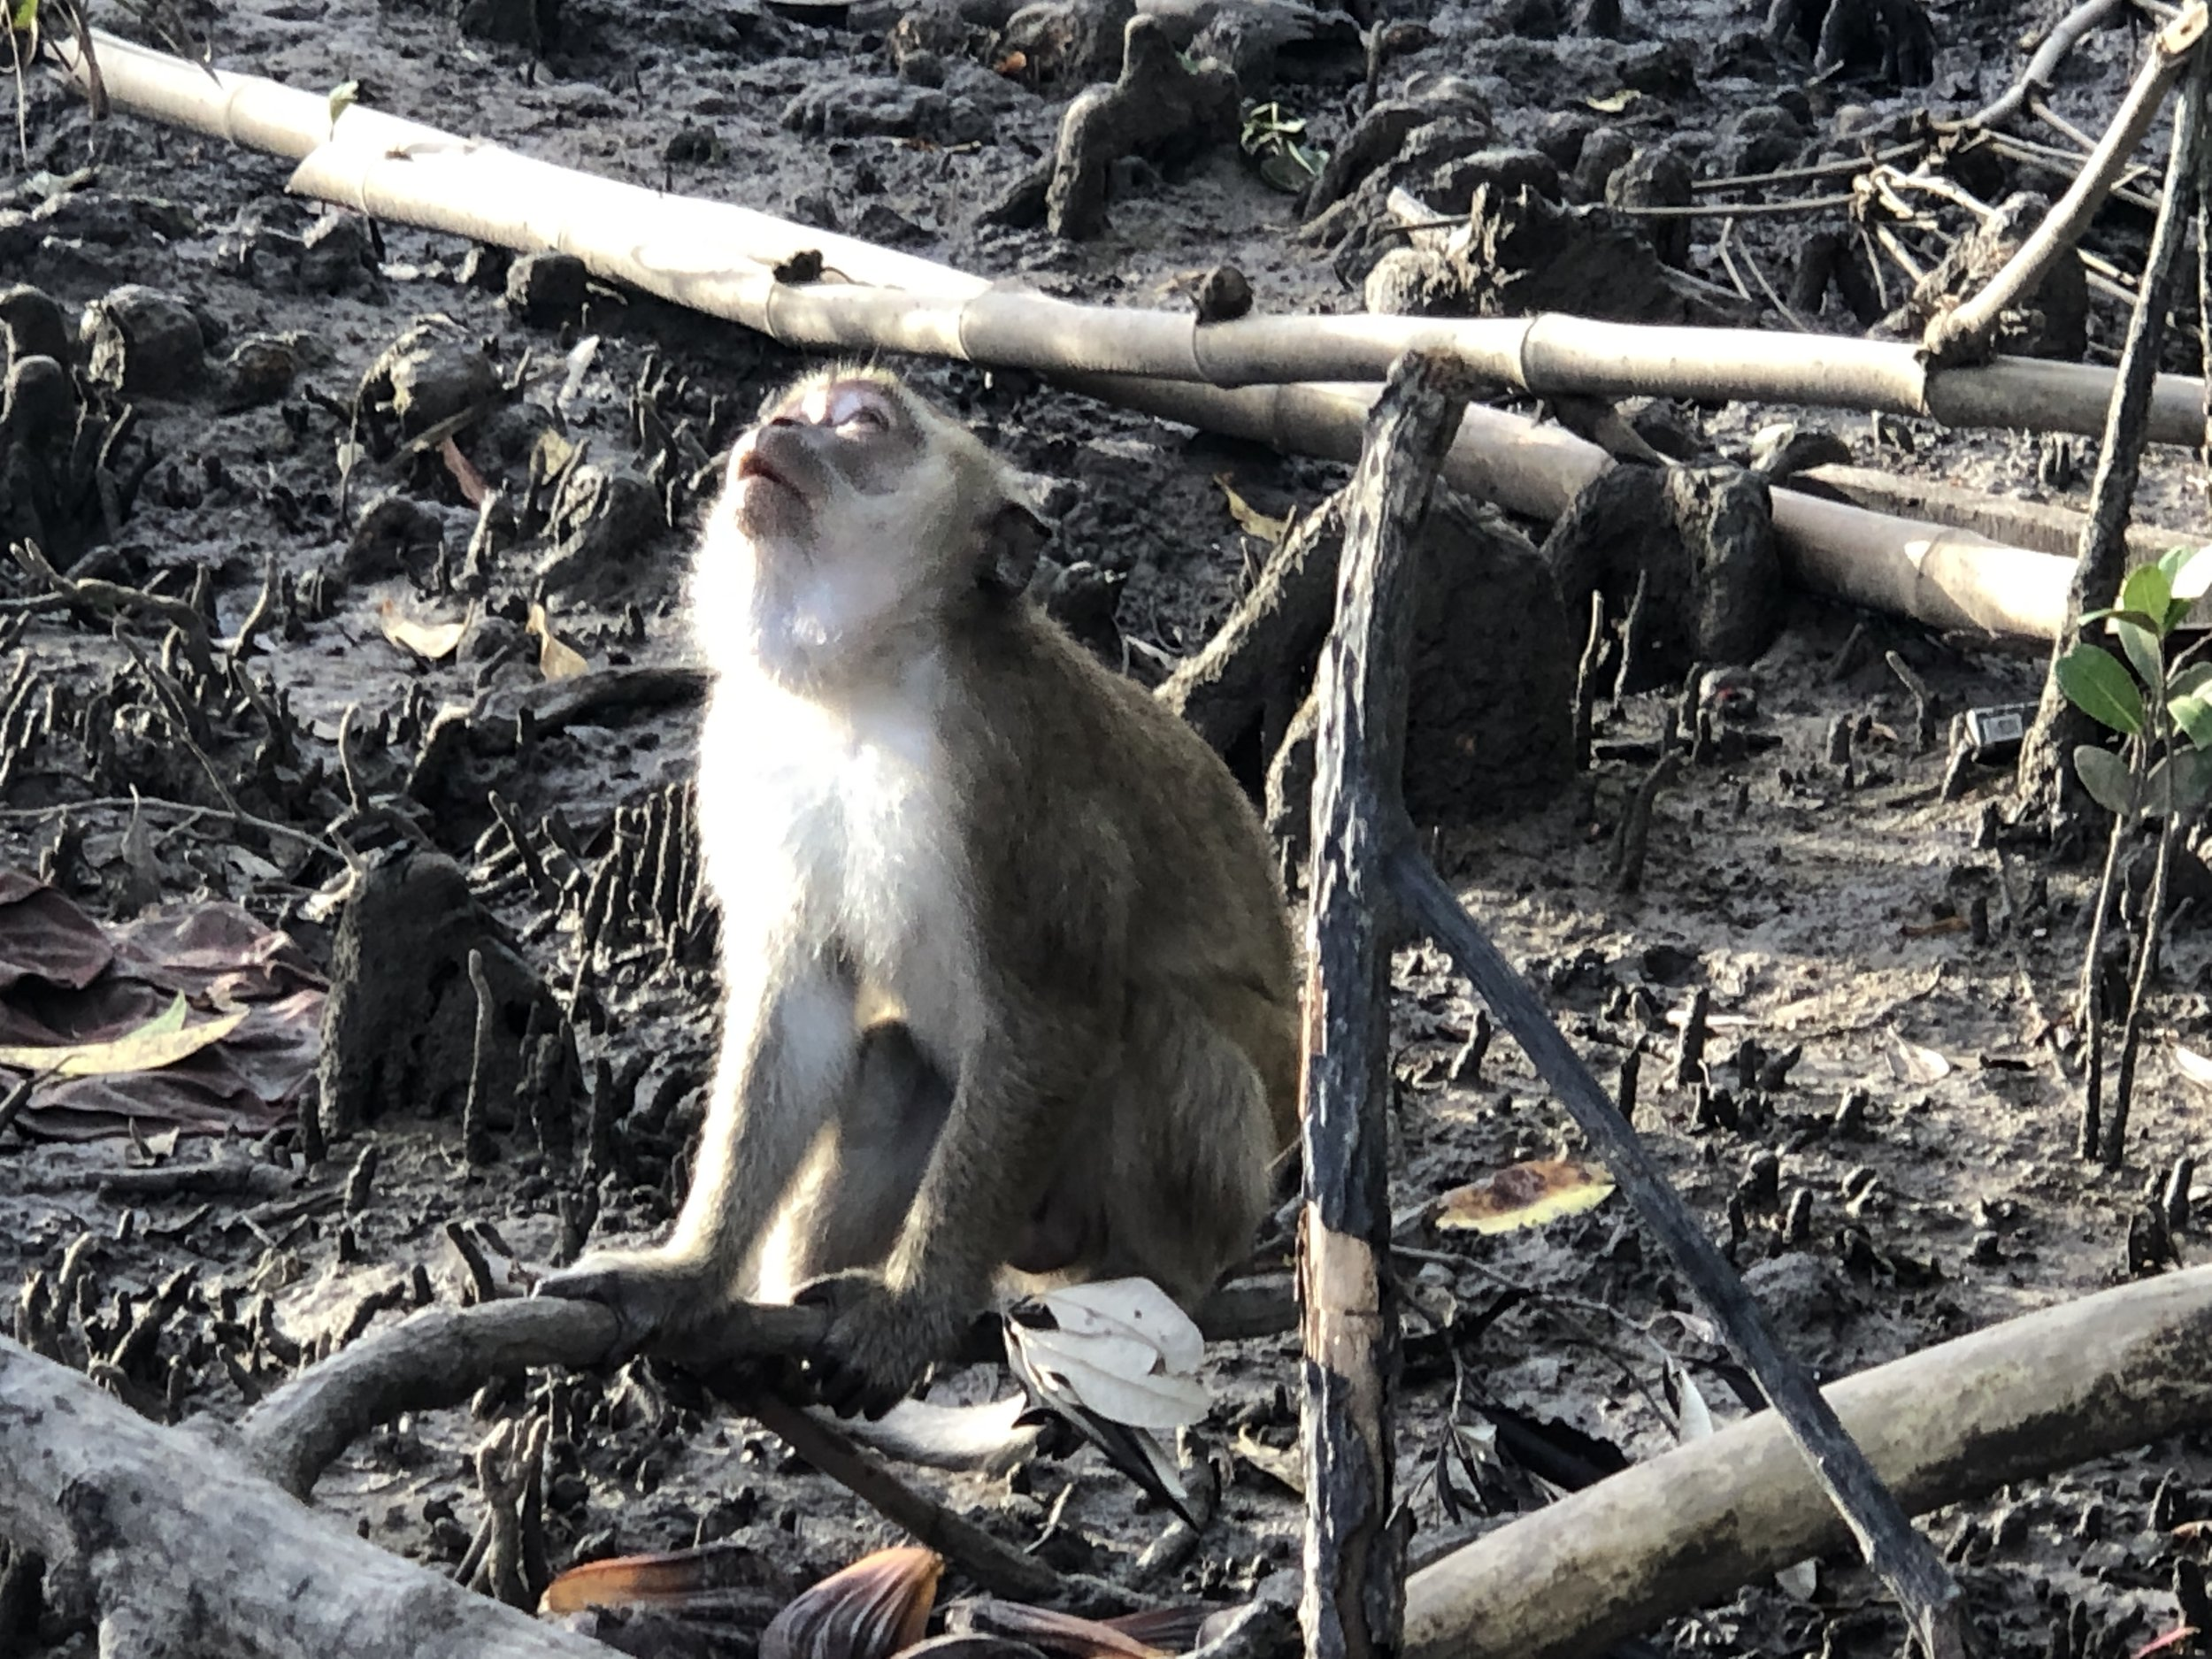 You may be lucky and see a long-tailed macaque